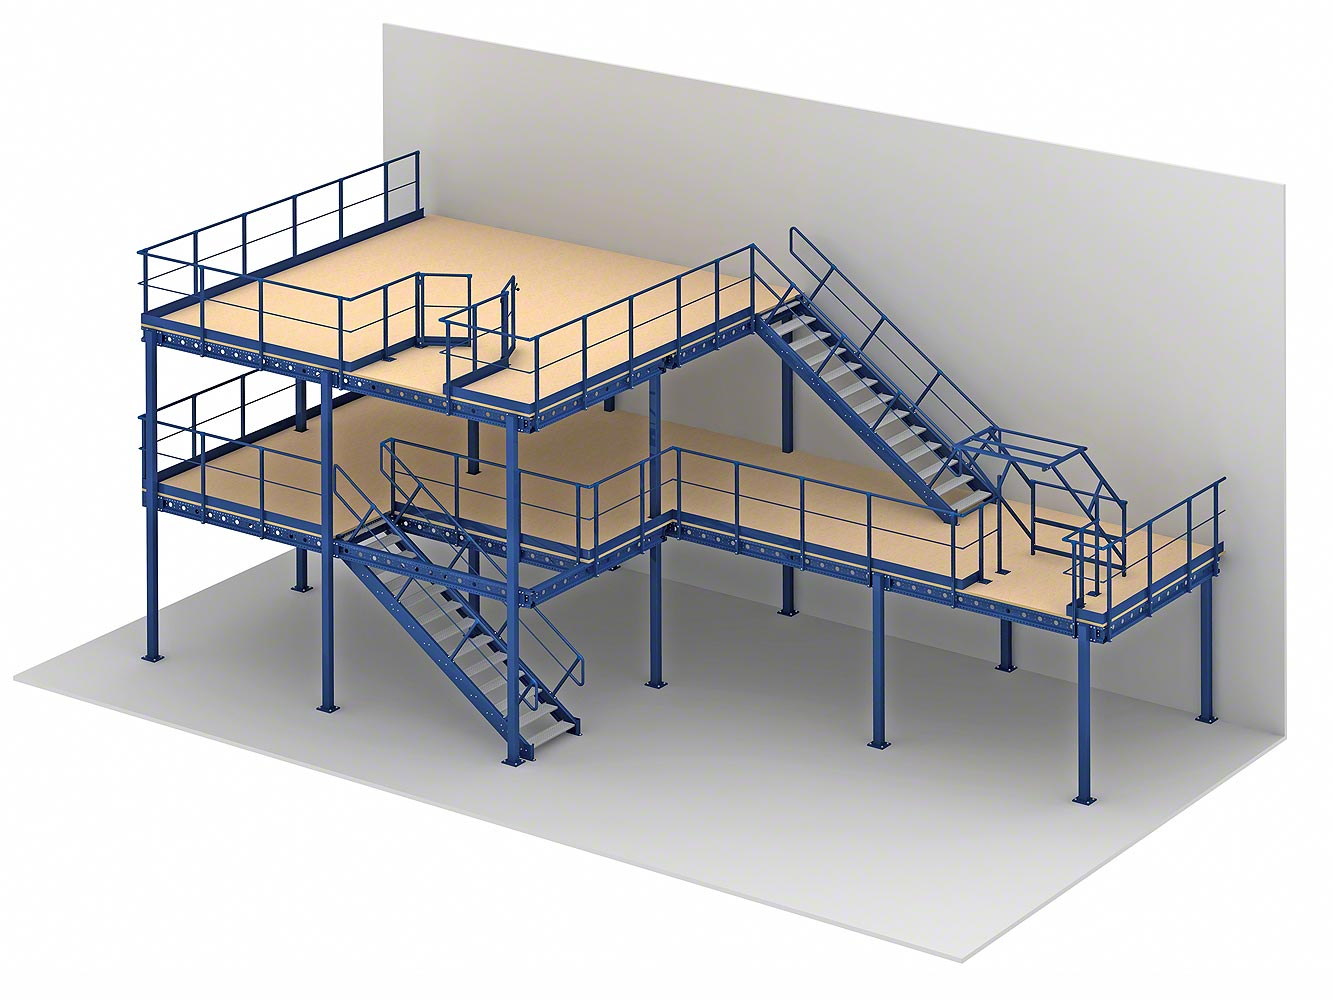 Delightful Mezzanine Floors